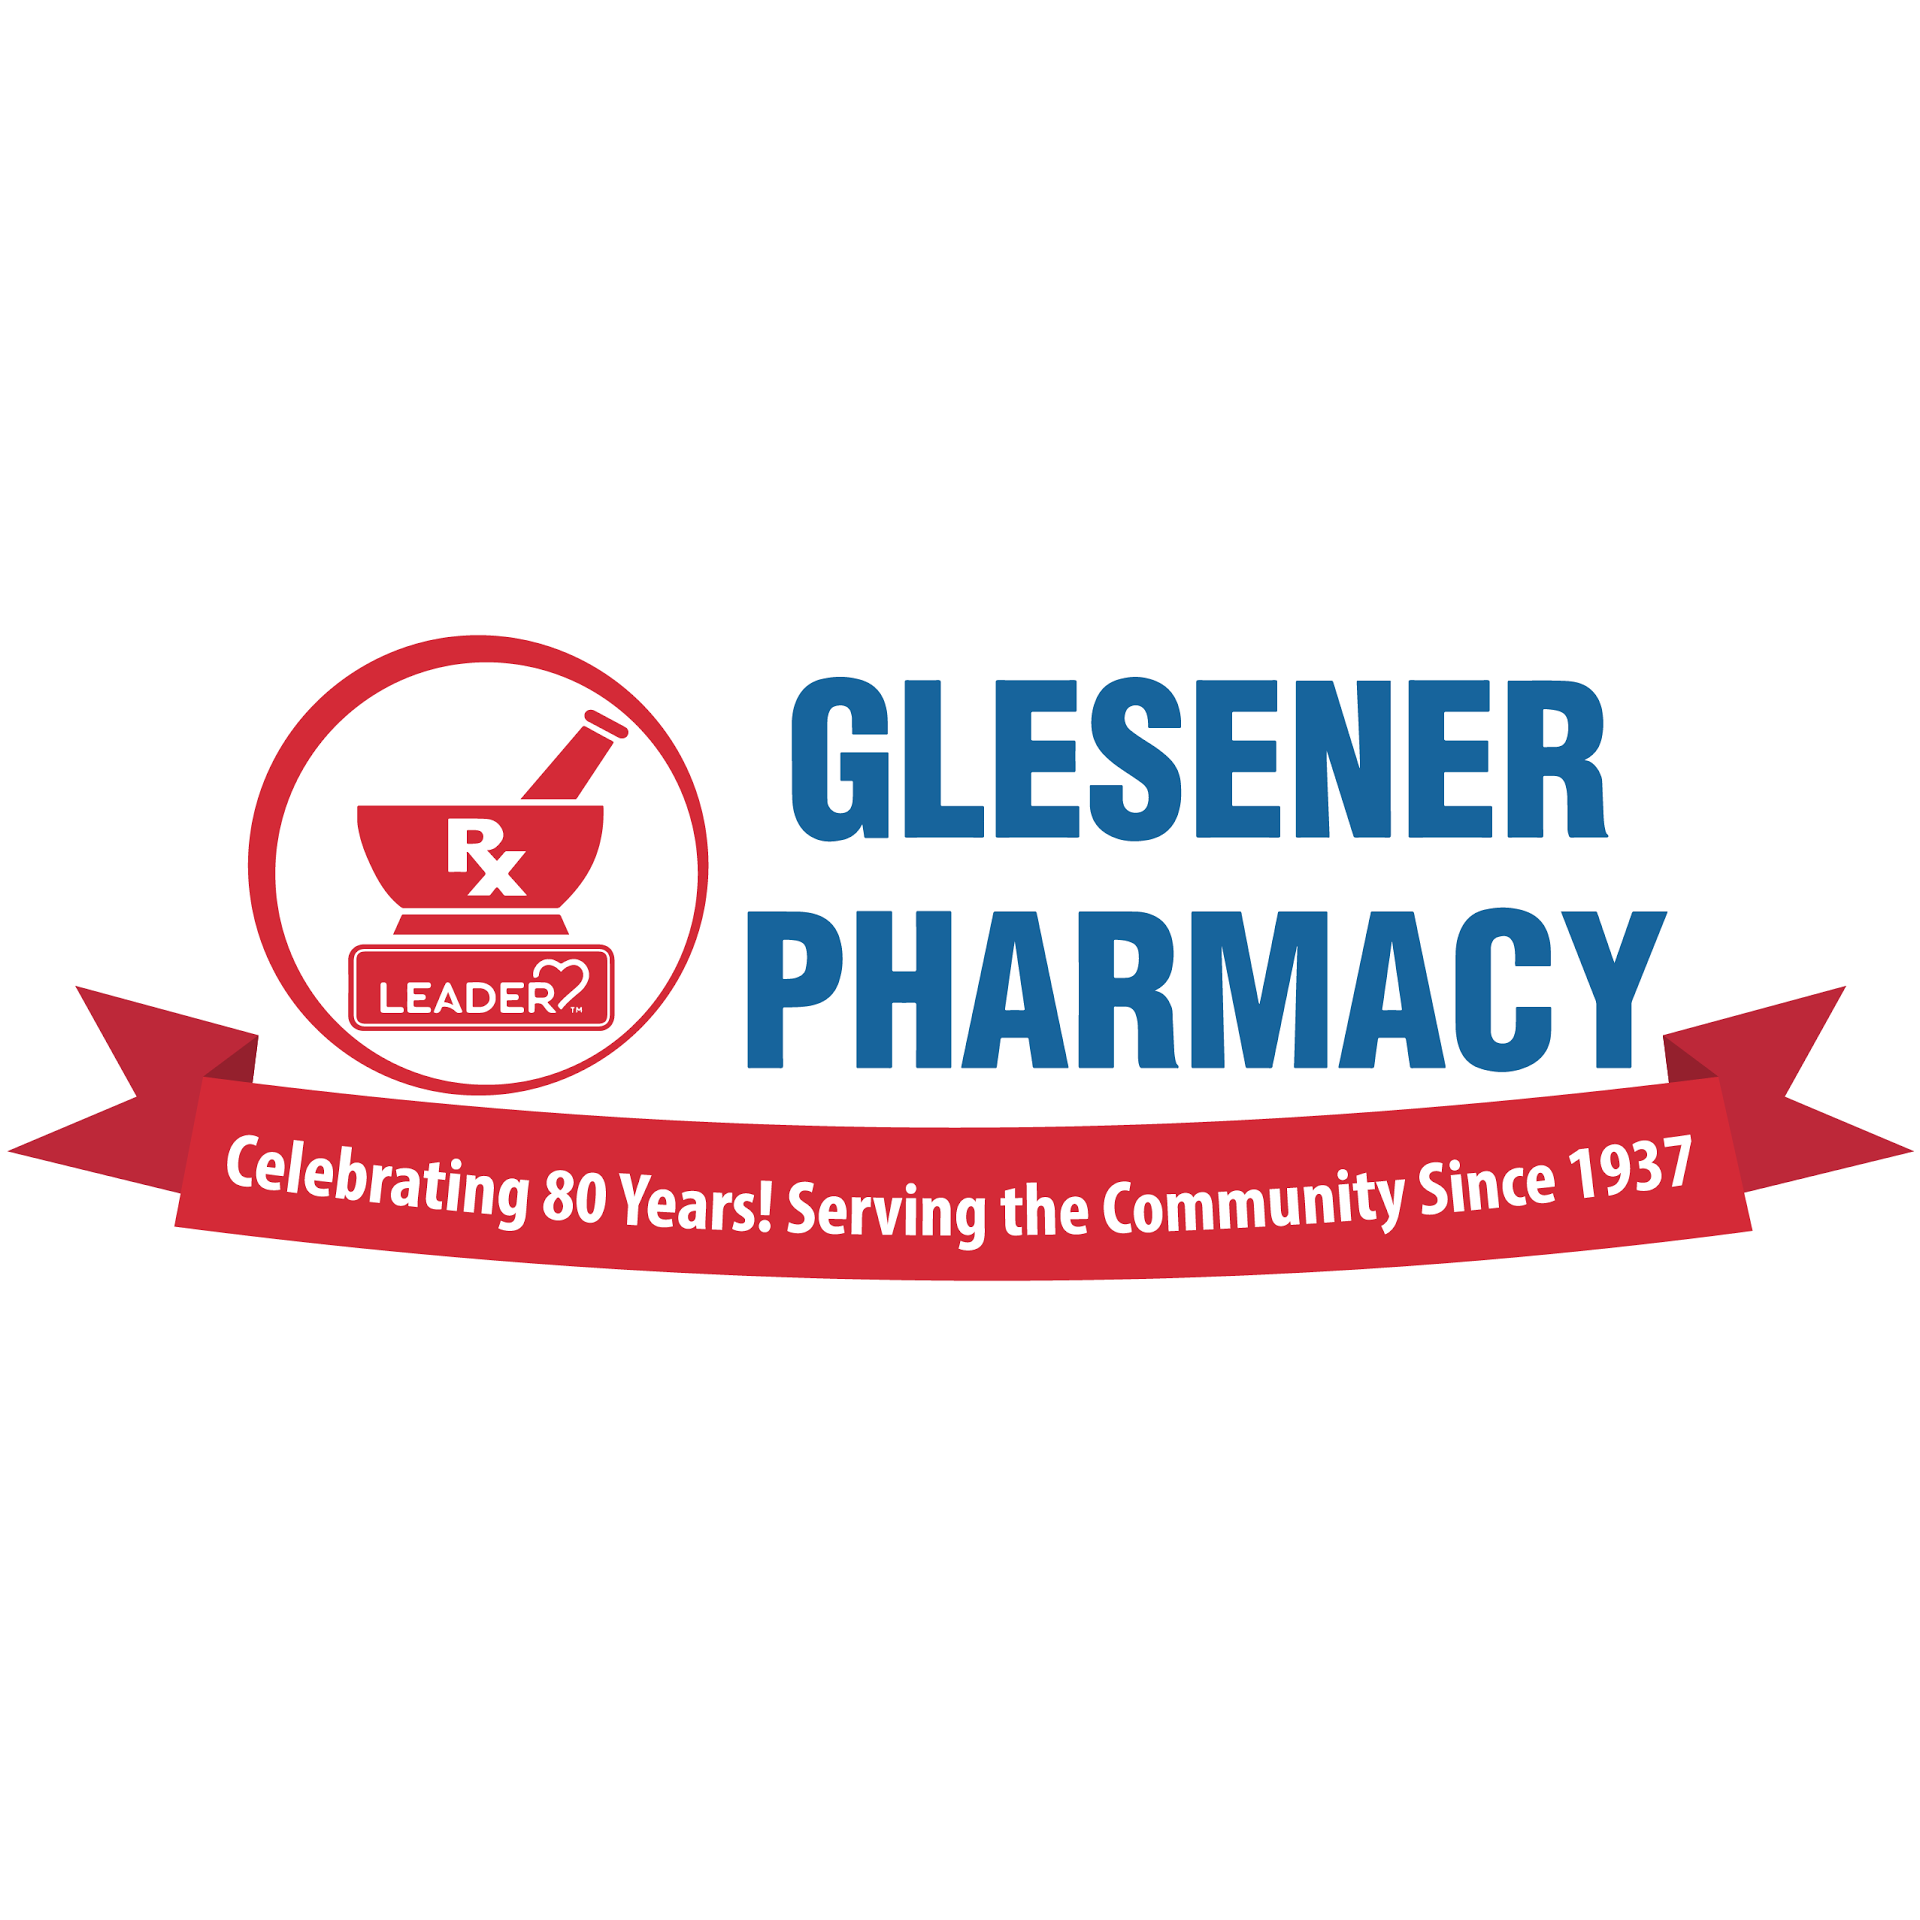 Glesener Pharmacy image 4